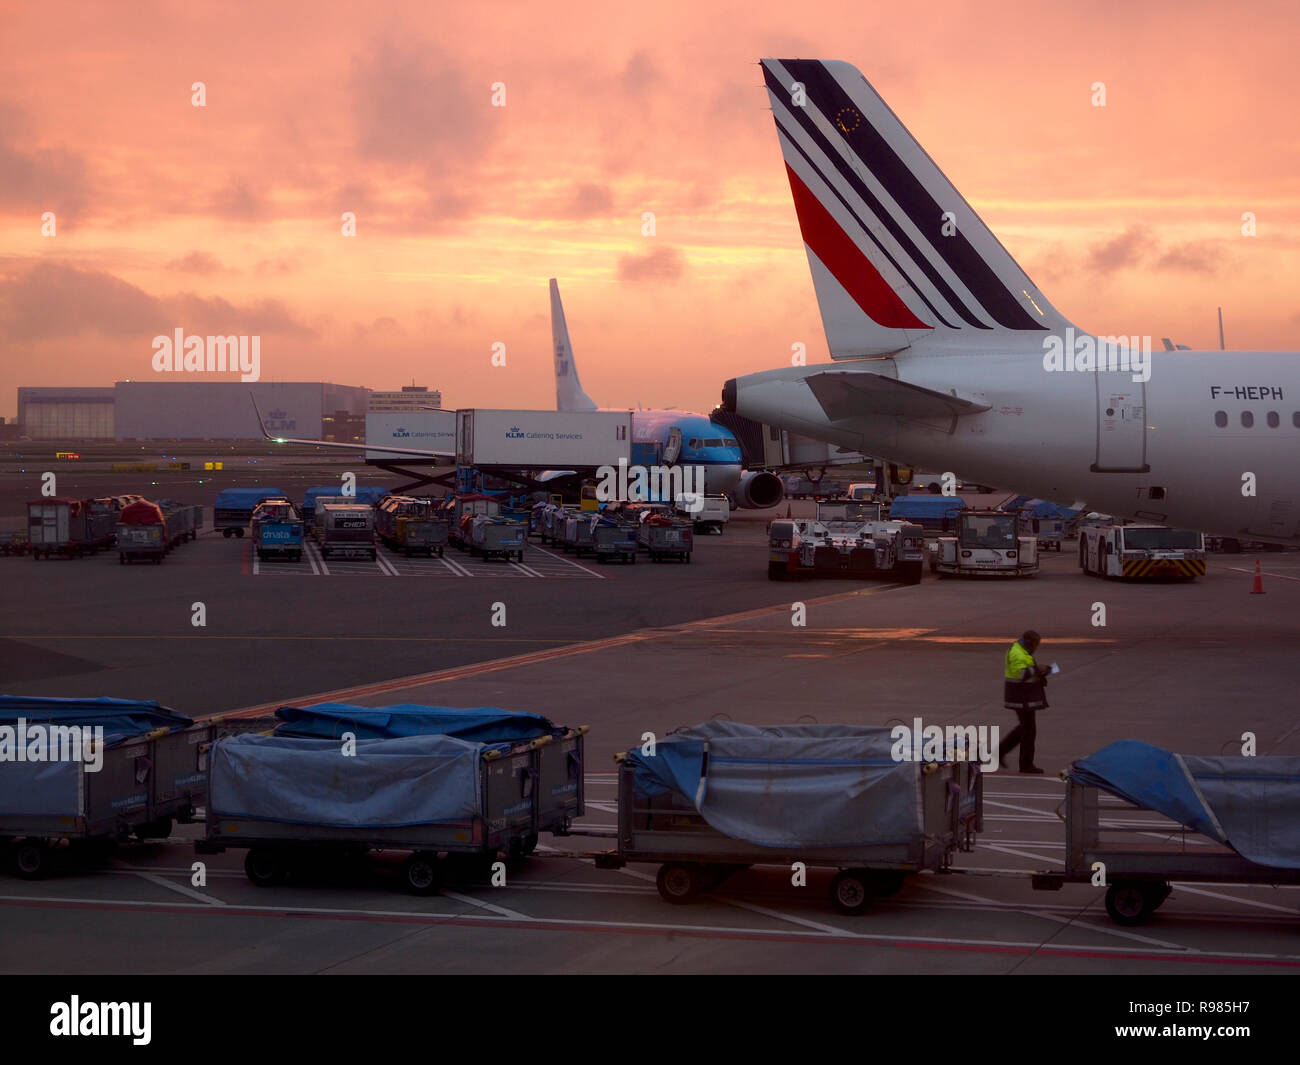 Schiphol Amsterdam Airport at sunrise early in the morning, with aeroplanes and bagage luggage cars KLM Air France - Stock Image